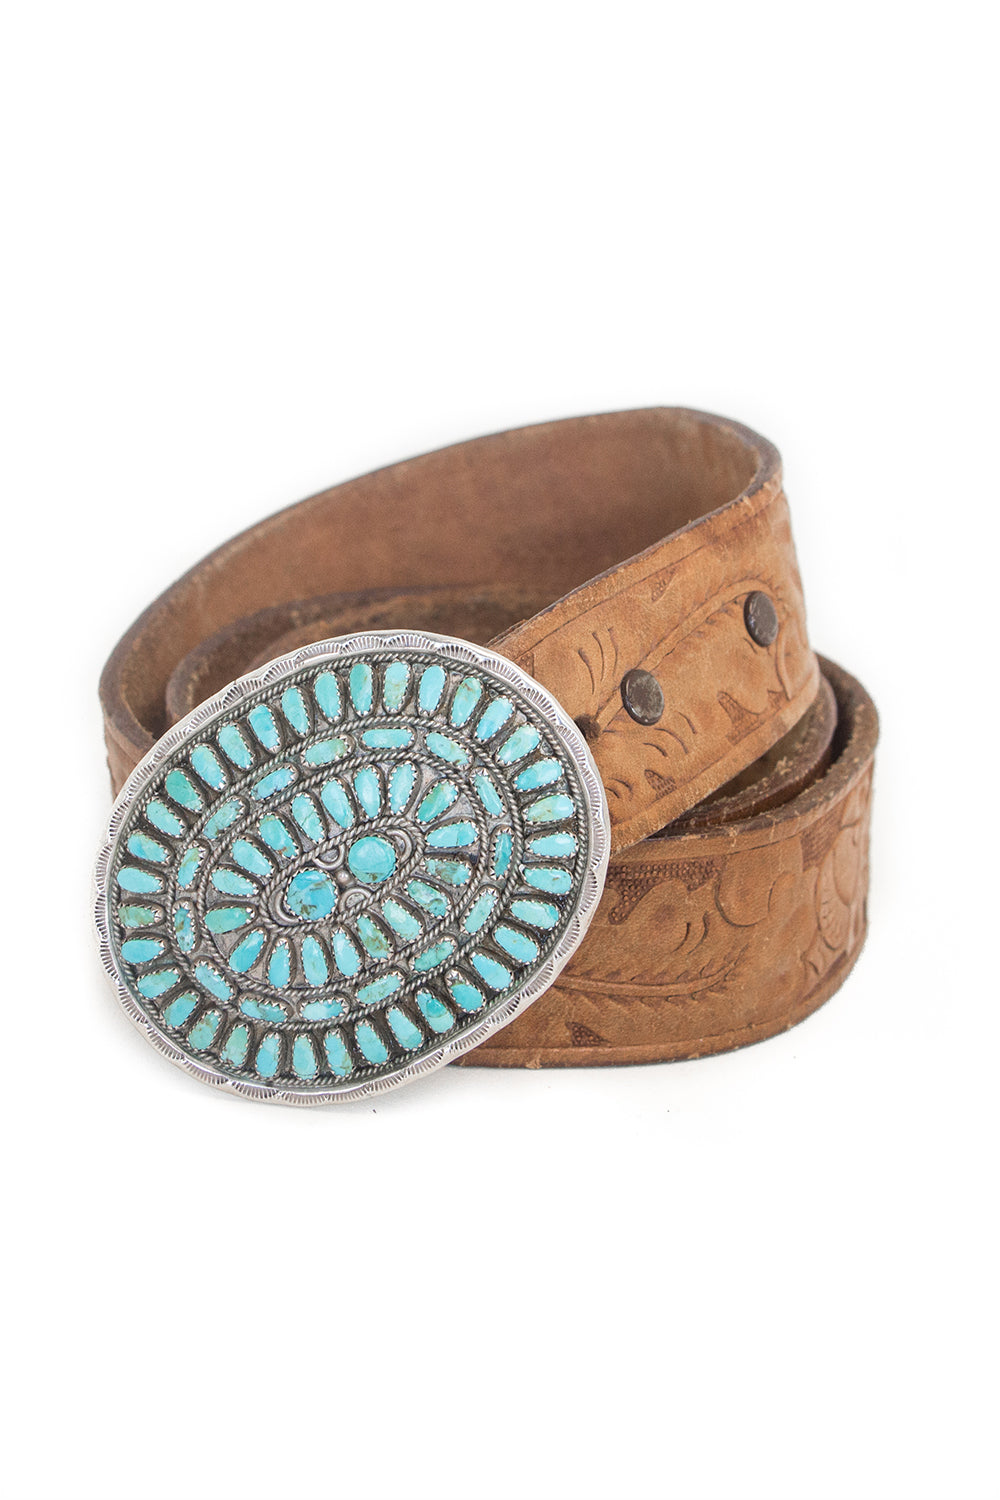 Belt, Concho, Cluster, Turquoise, Hallmark, Turquoise, 824